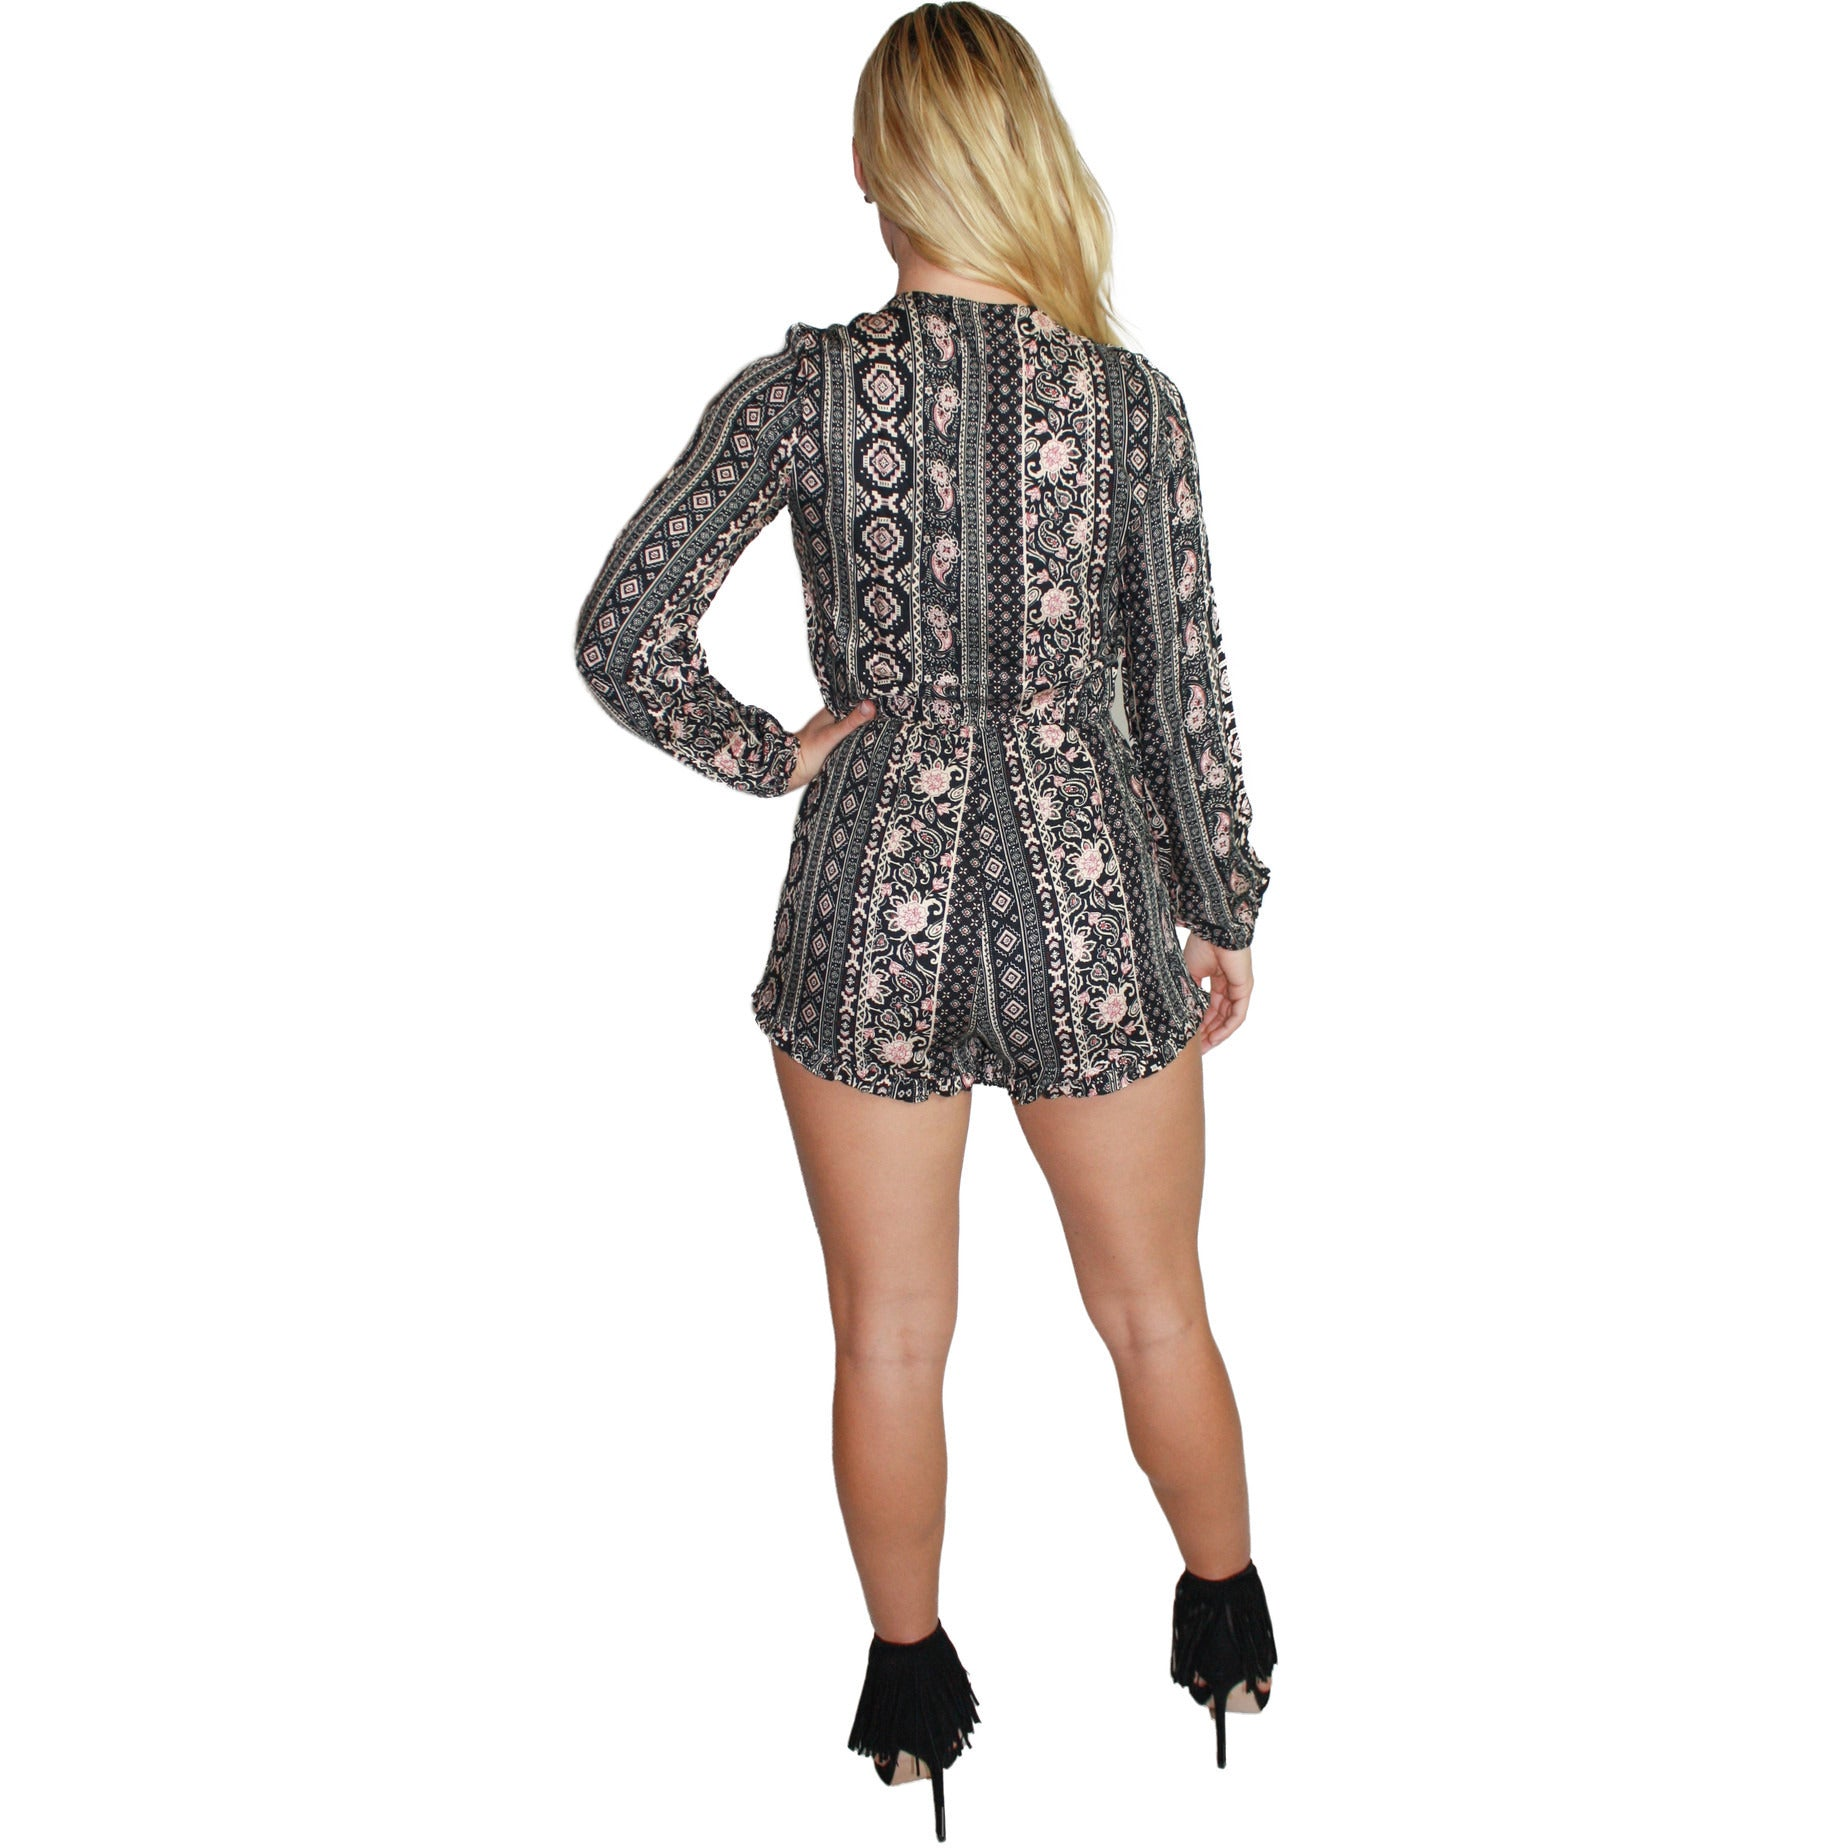 Aztec Tie Romper in Black